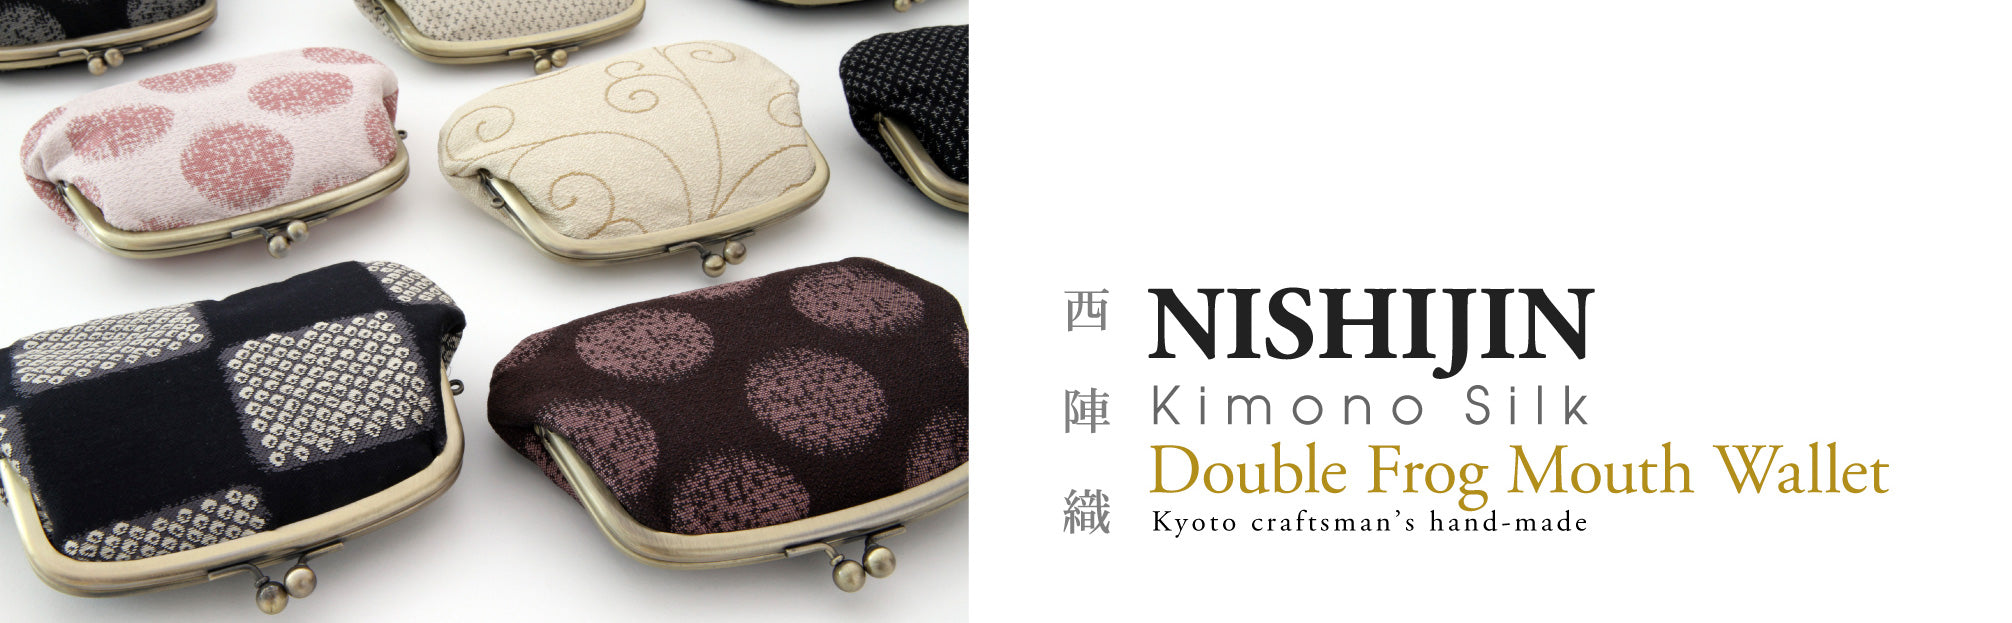 NISHIJIN Kimono Silk Double Frog Mouth Wallet craftsman's hand-made 西陣織 がま口コスメポーチ